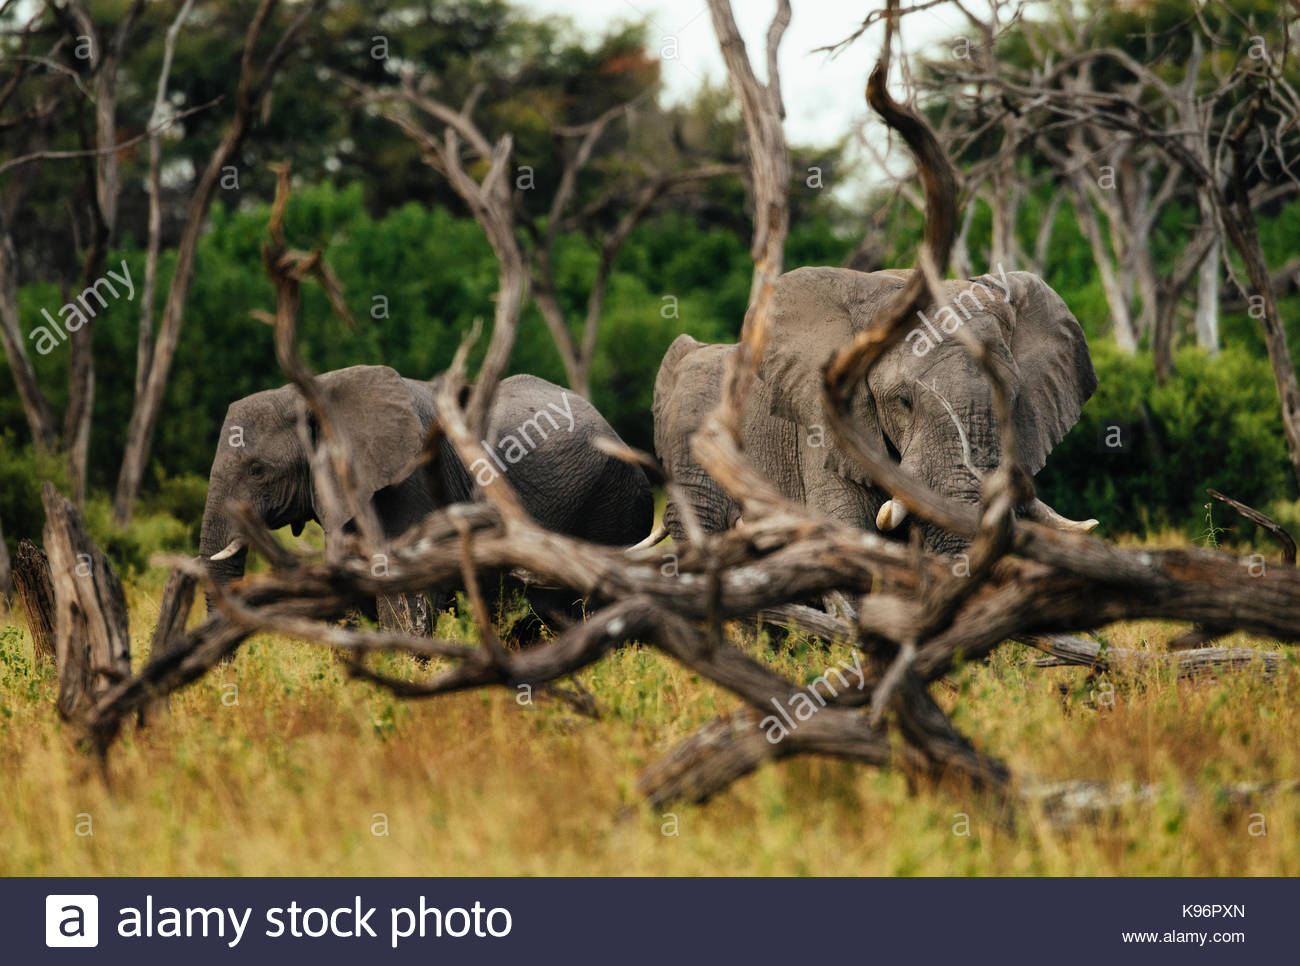 Herd of African elephant, Loxodonda africana, walking in the forest - Stock Image